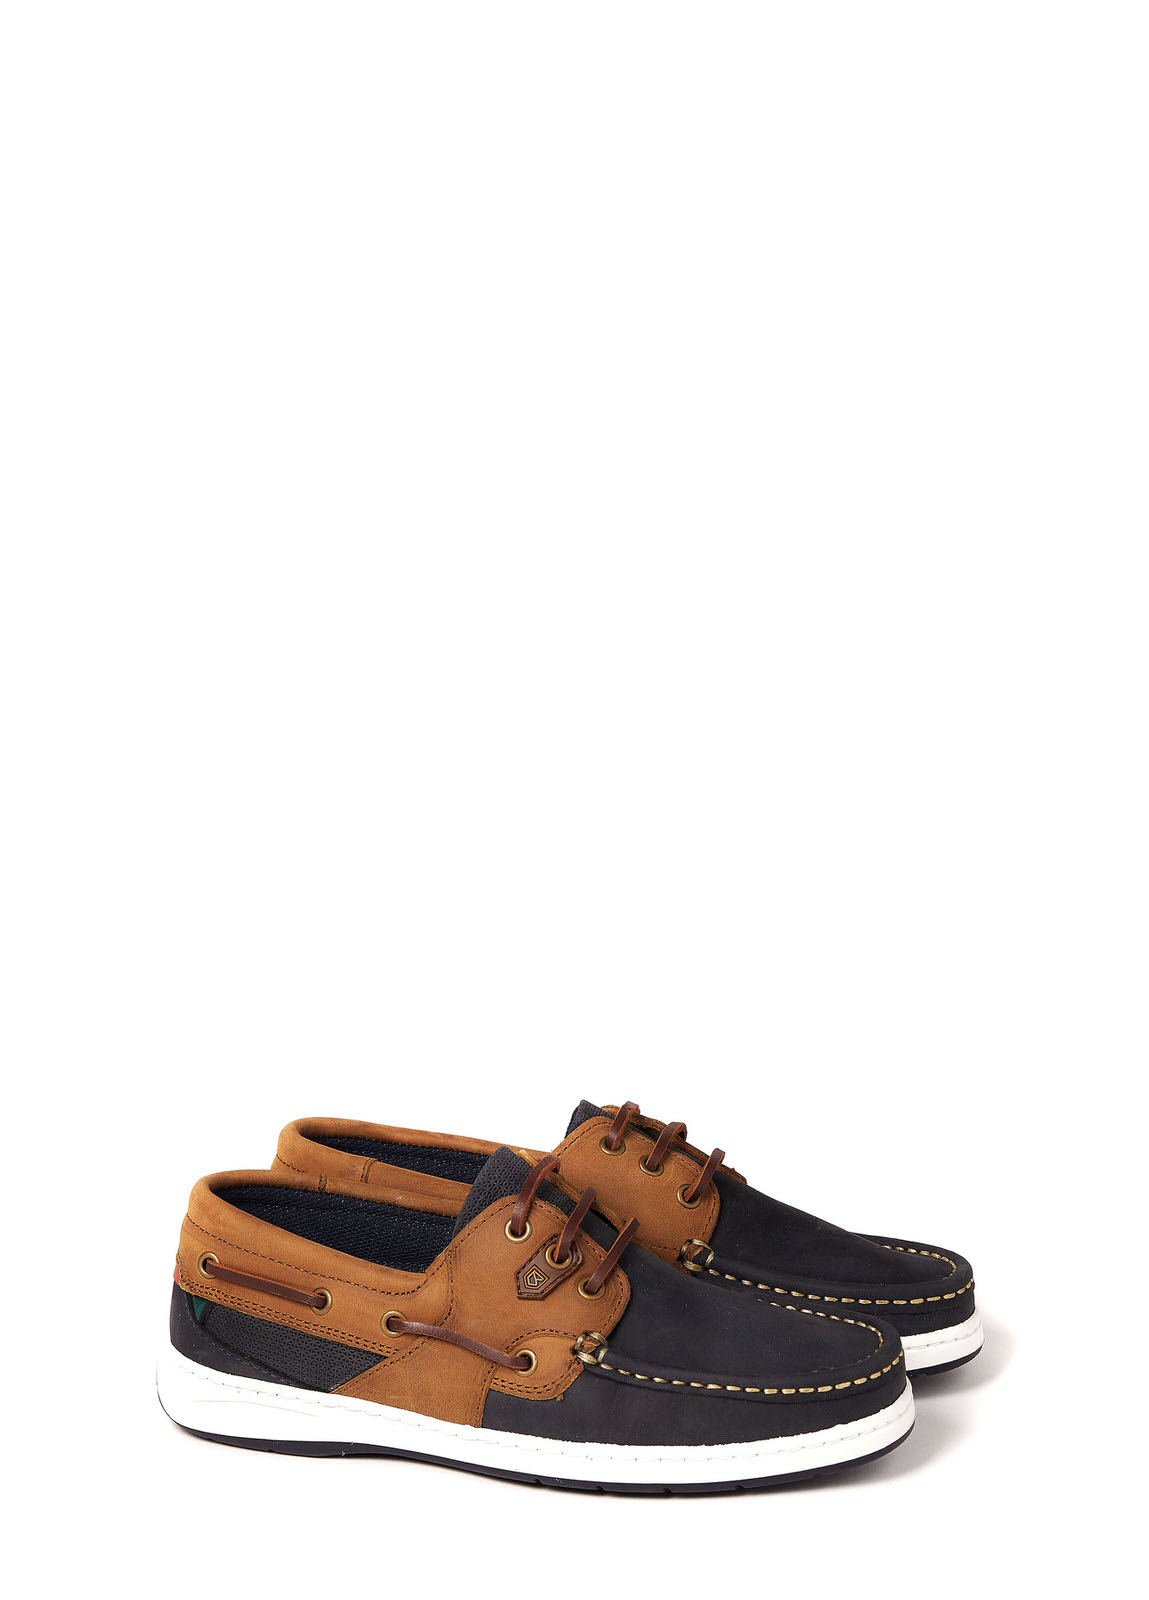 Auckland Loafer - Denim/Tan